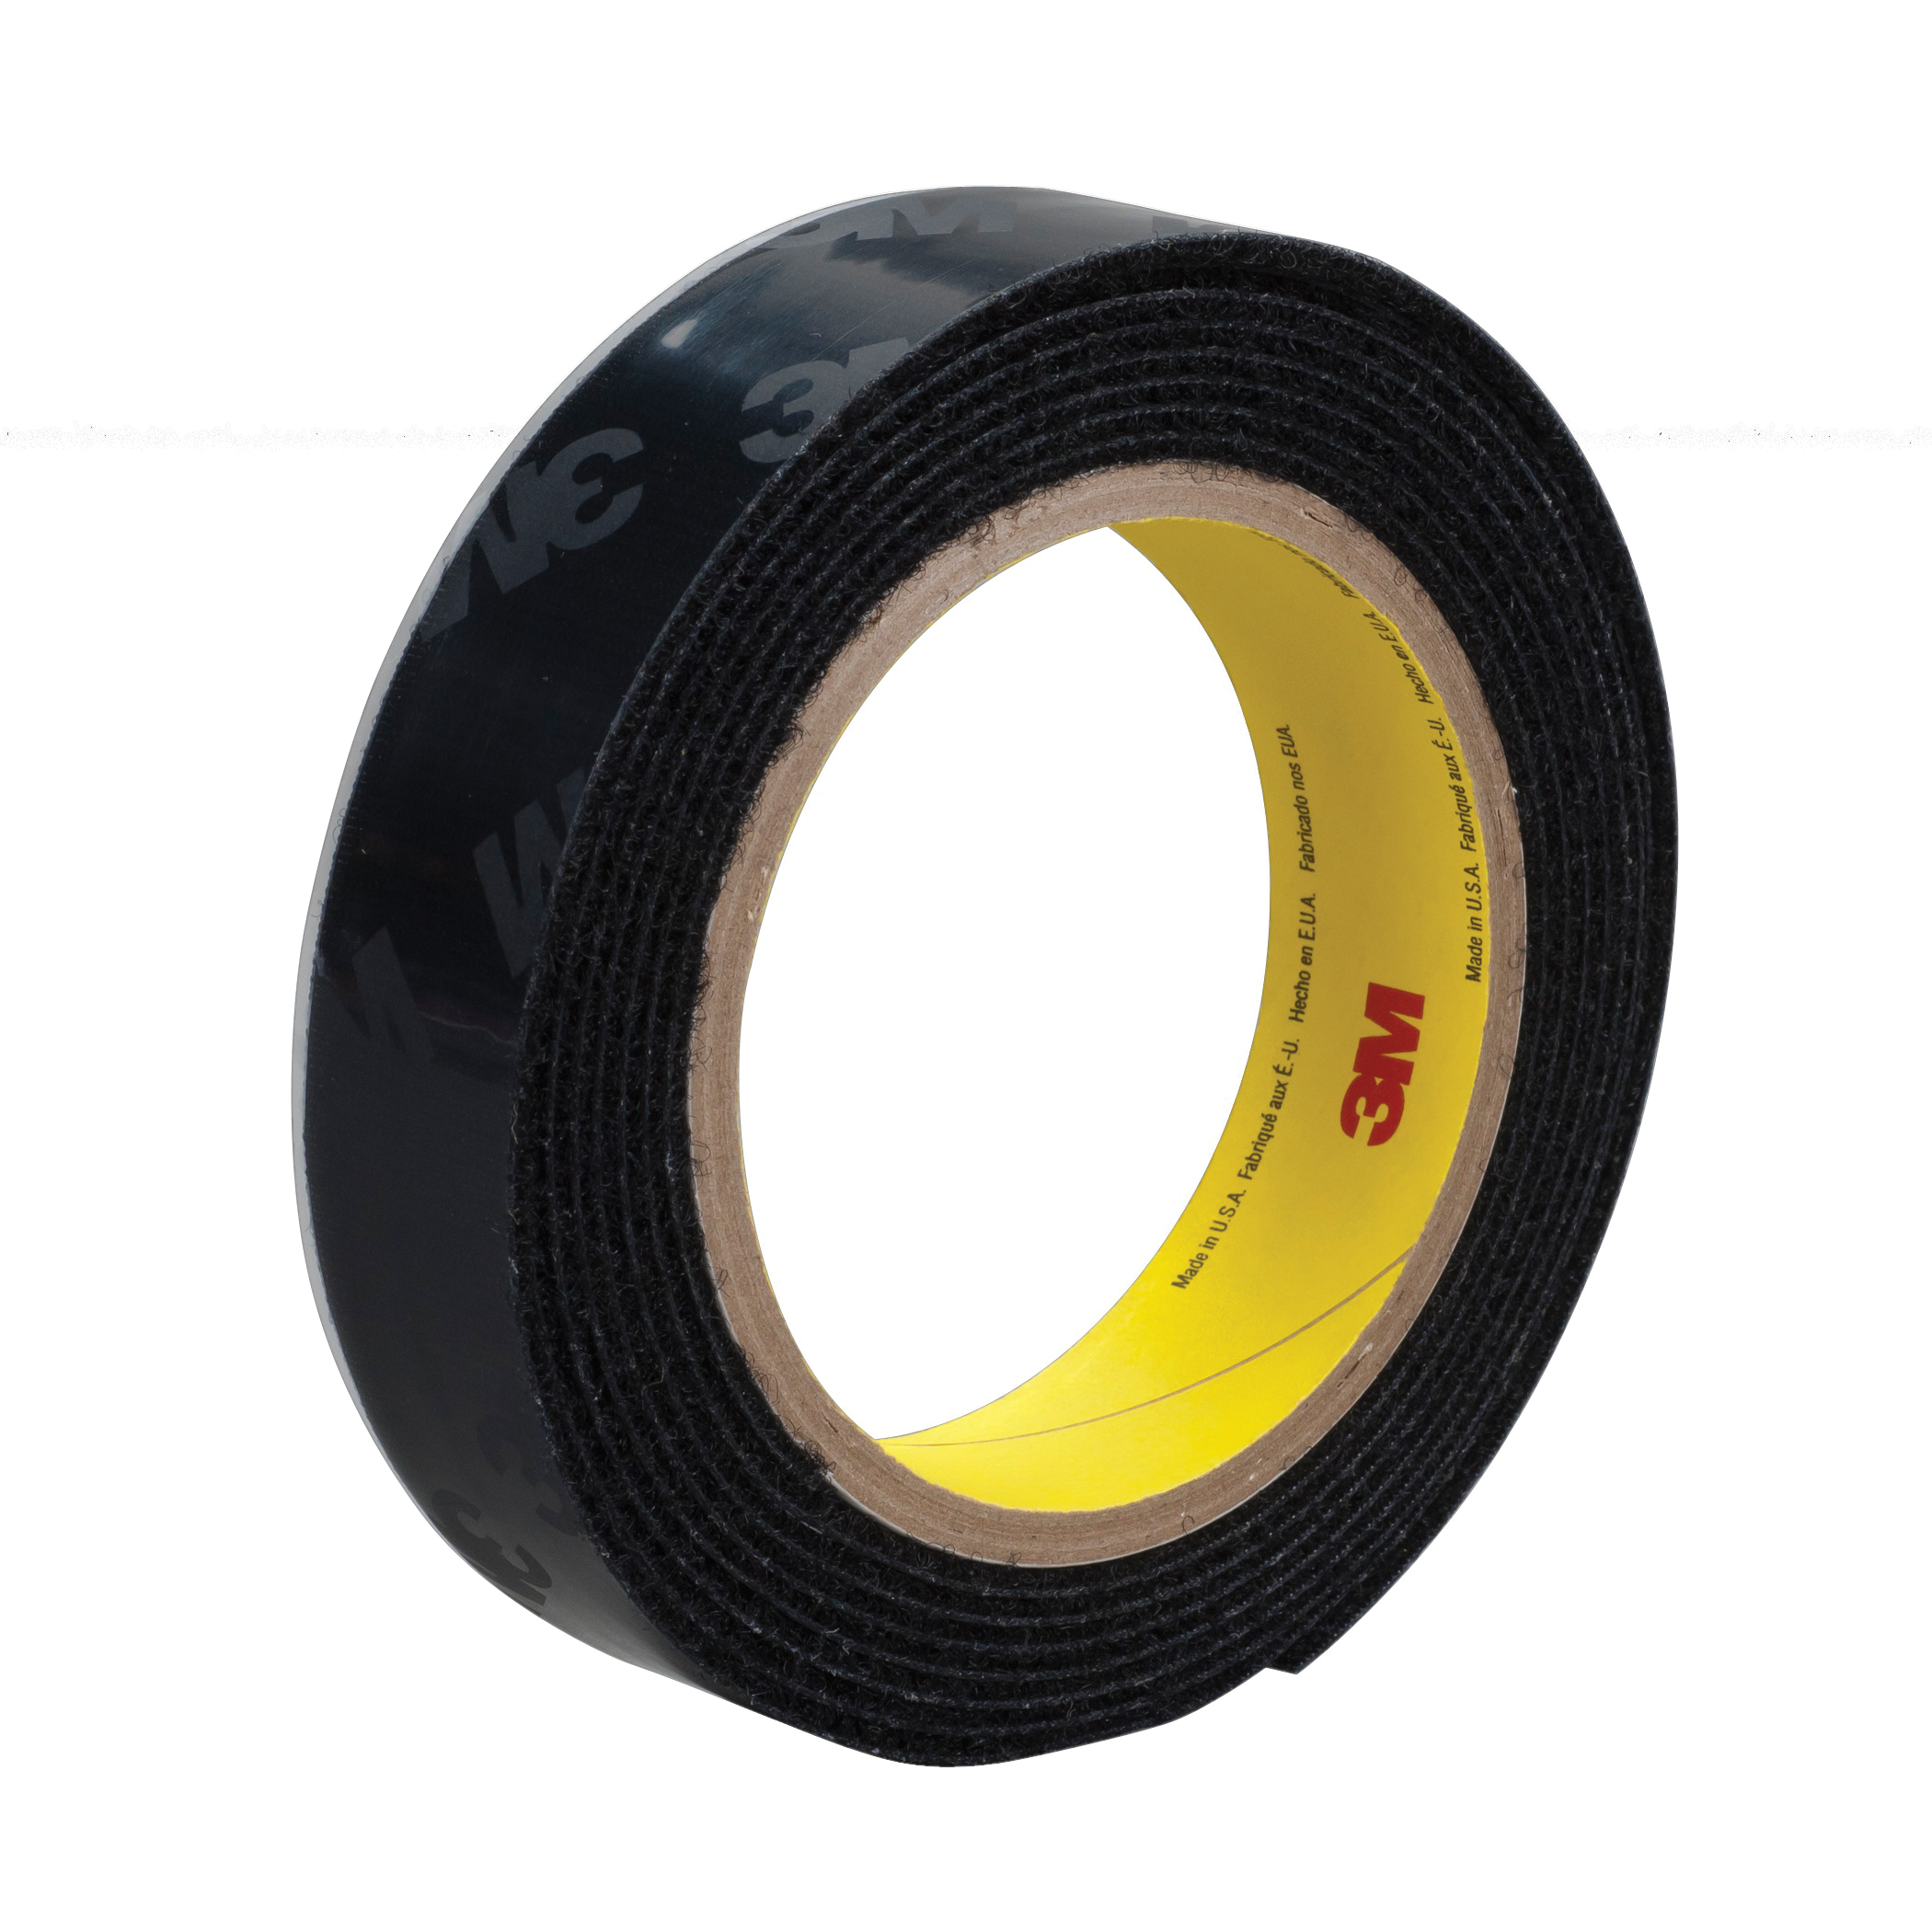 3M™ 021200-65619 General Performance Reclosable Loop Fastener Tape, 50 yd L x 1 in W, 0.15 in THK Engaged, High Tack Rubber Adhesive, Woven Nylon Backing, Black